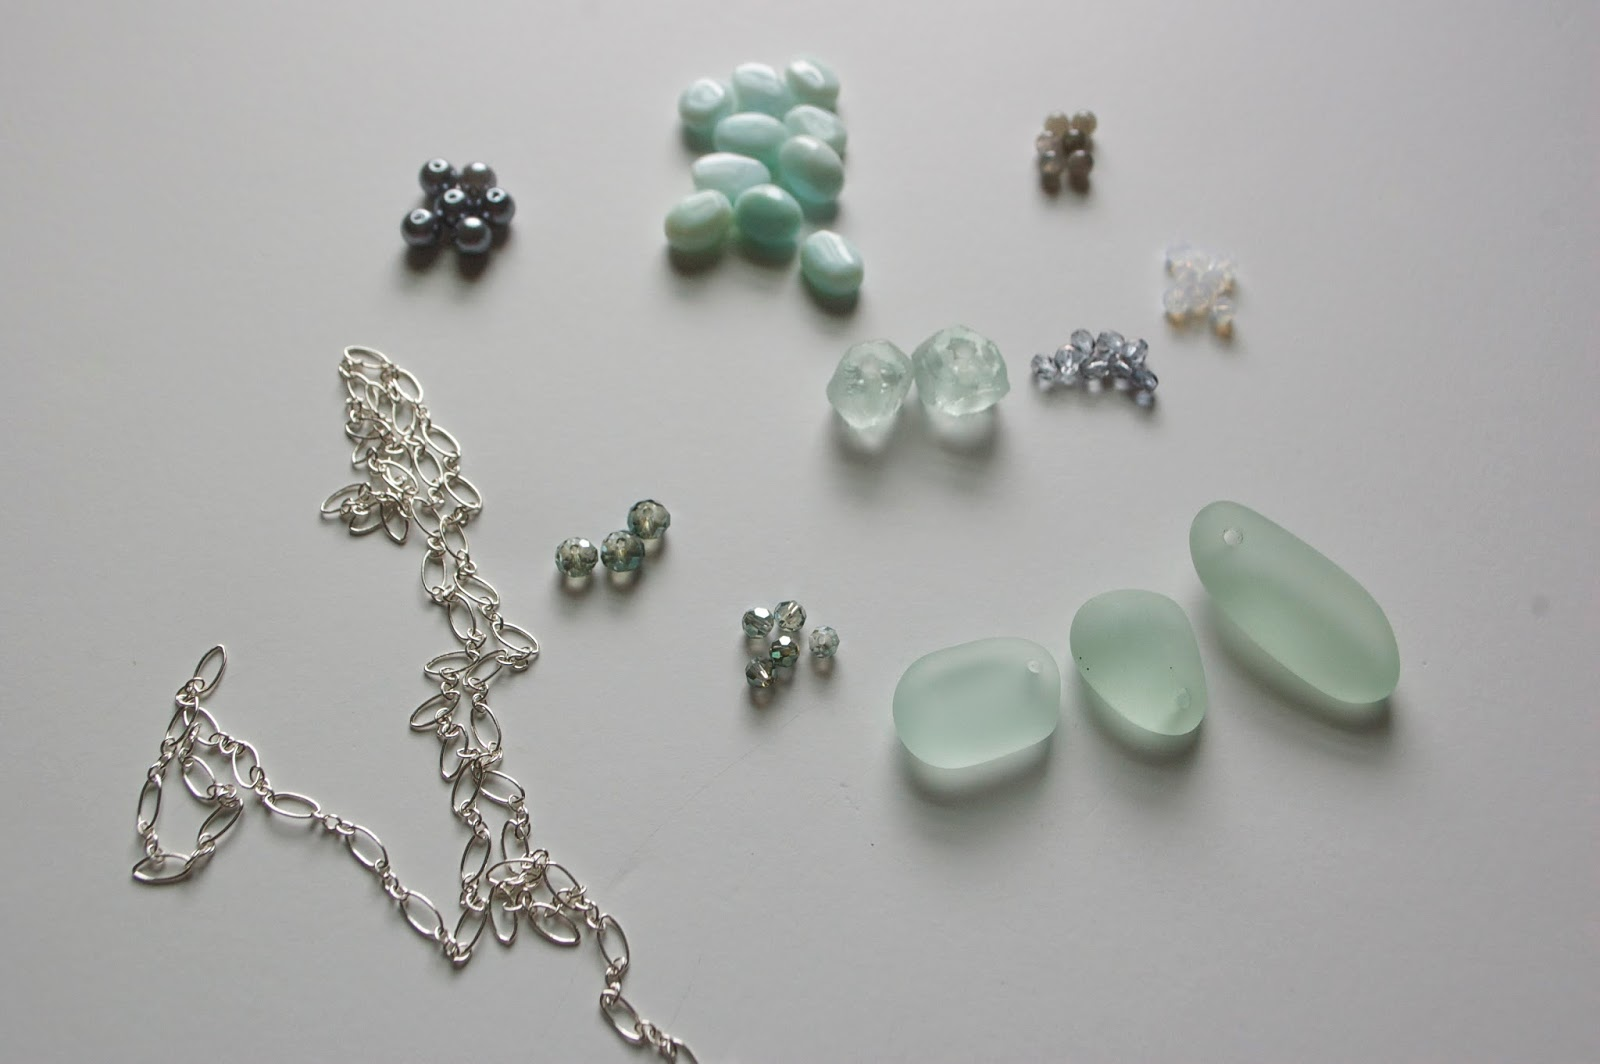 Diy Sea Glass Necklace My Girlish Whims